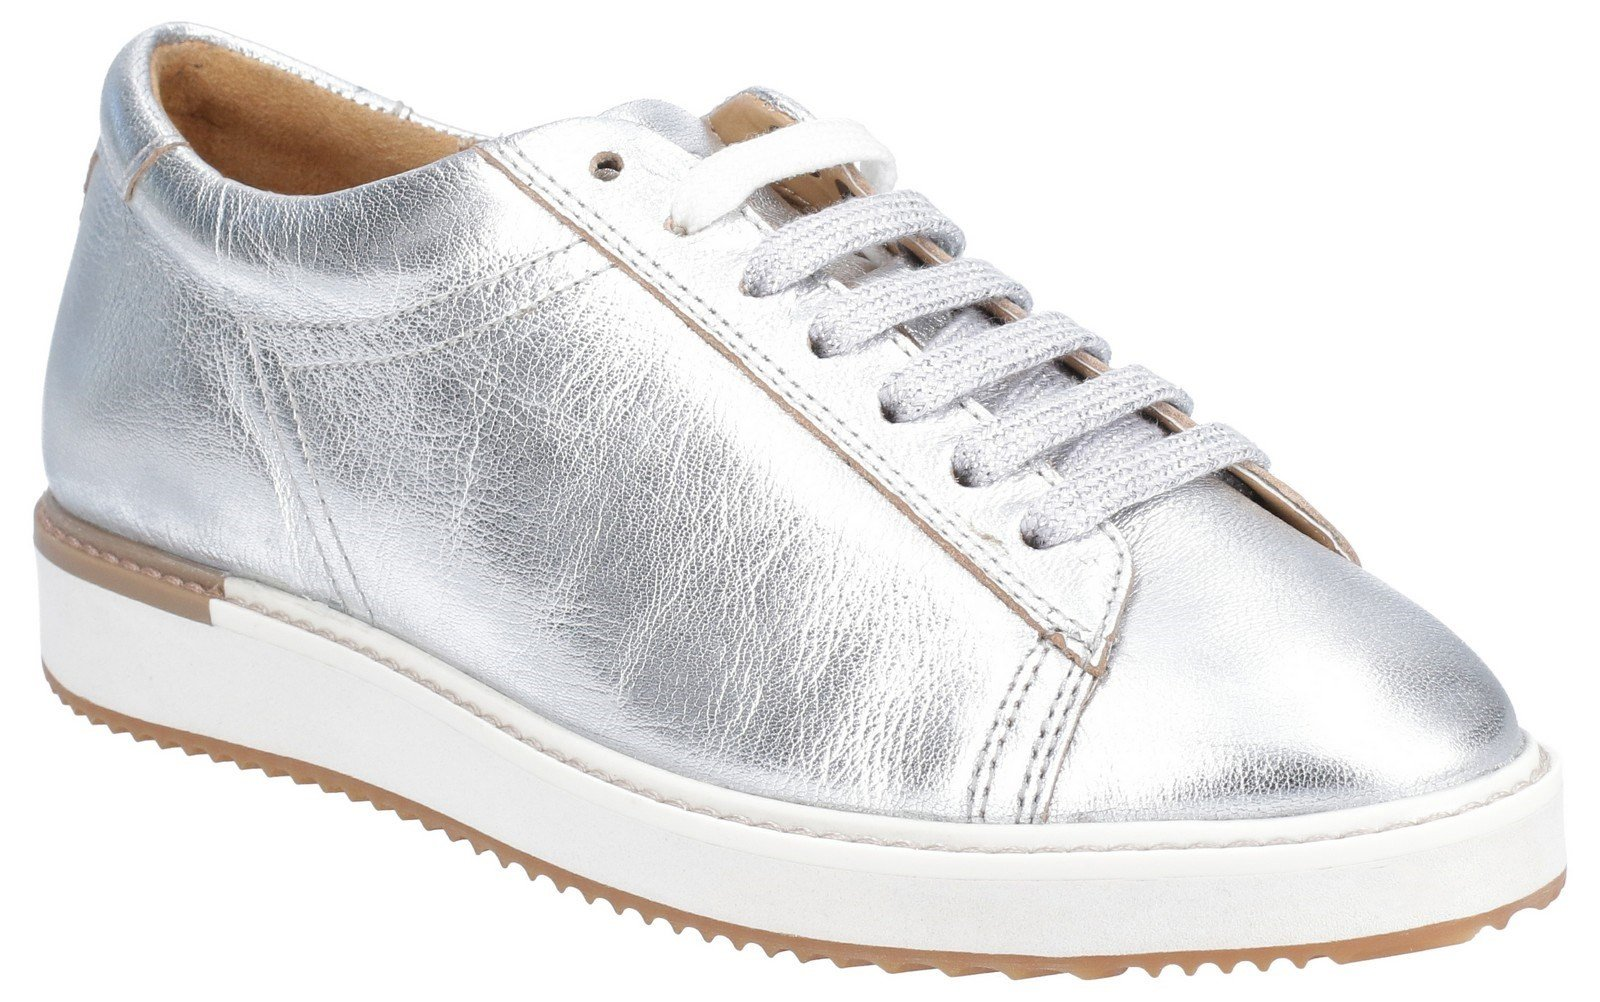 Hush Puppies Women's Sabine BouncePLUS Lace Up Trainer Various Colours 29235 - Silver Metallic Leather 3